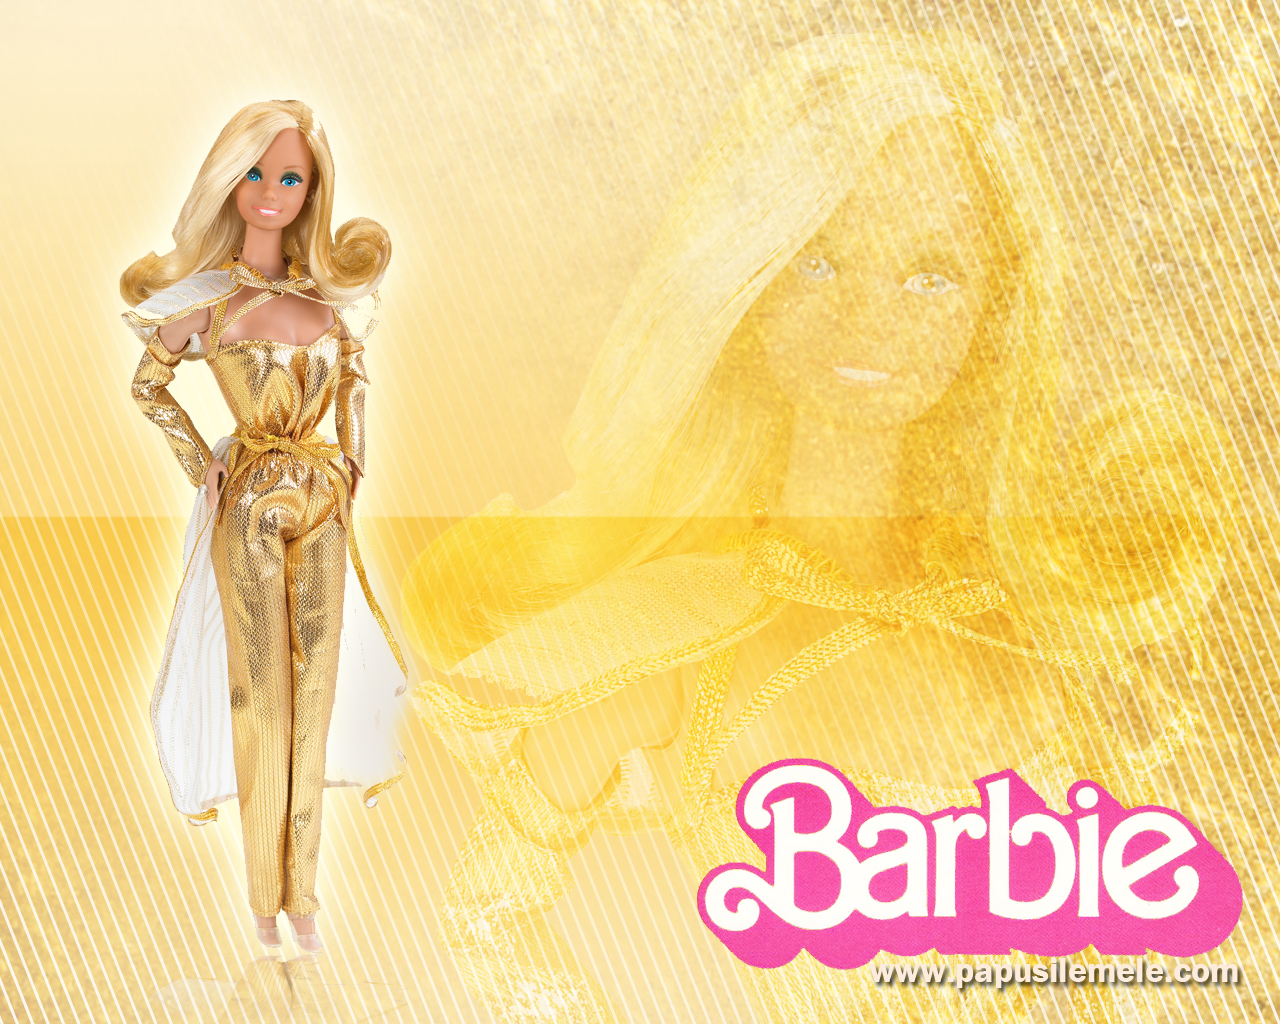 hd wallpaper: Barbie Wallpaper background